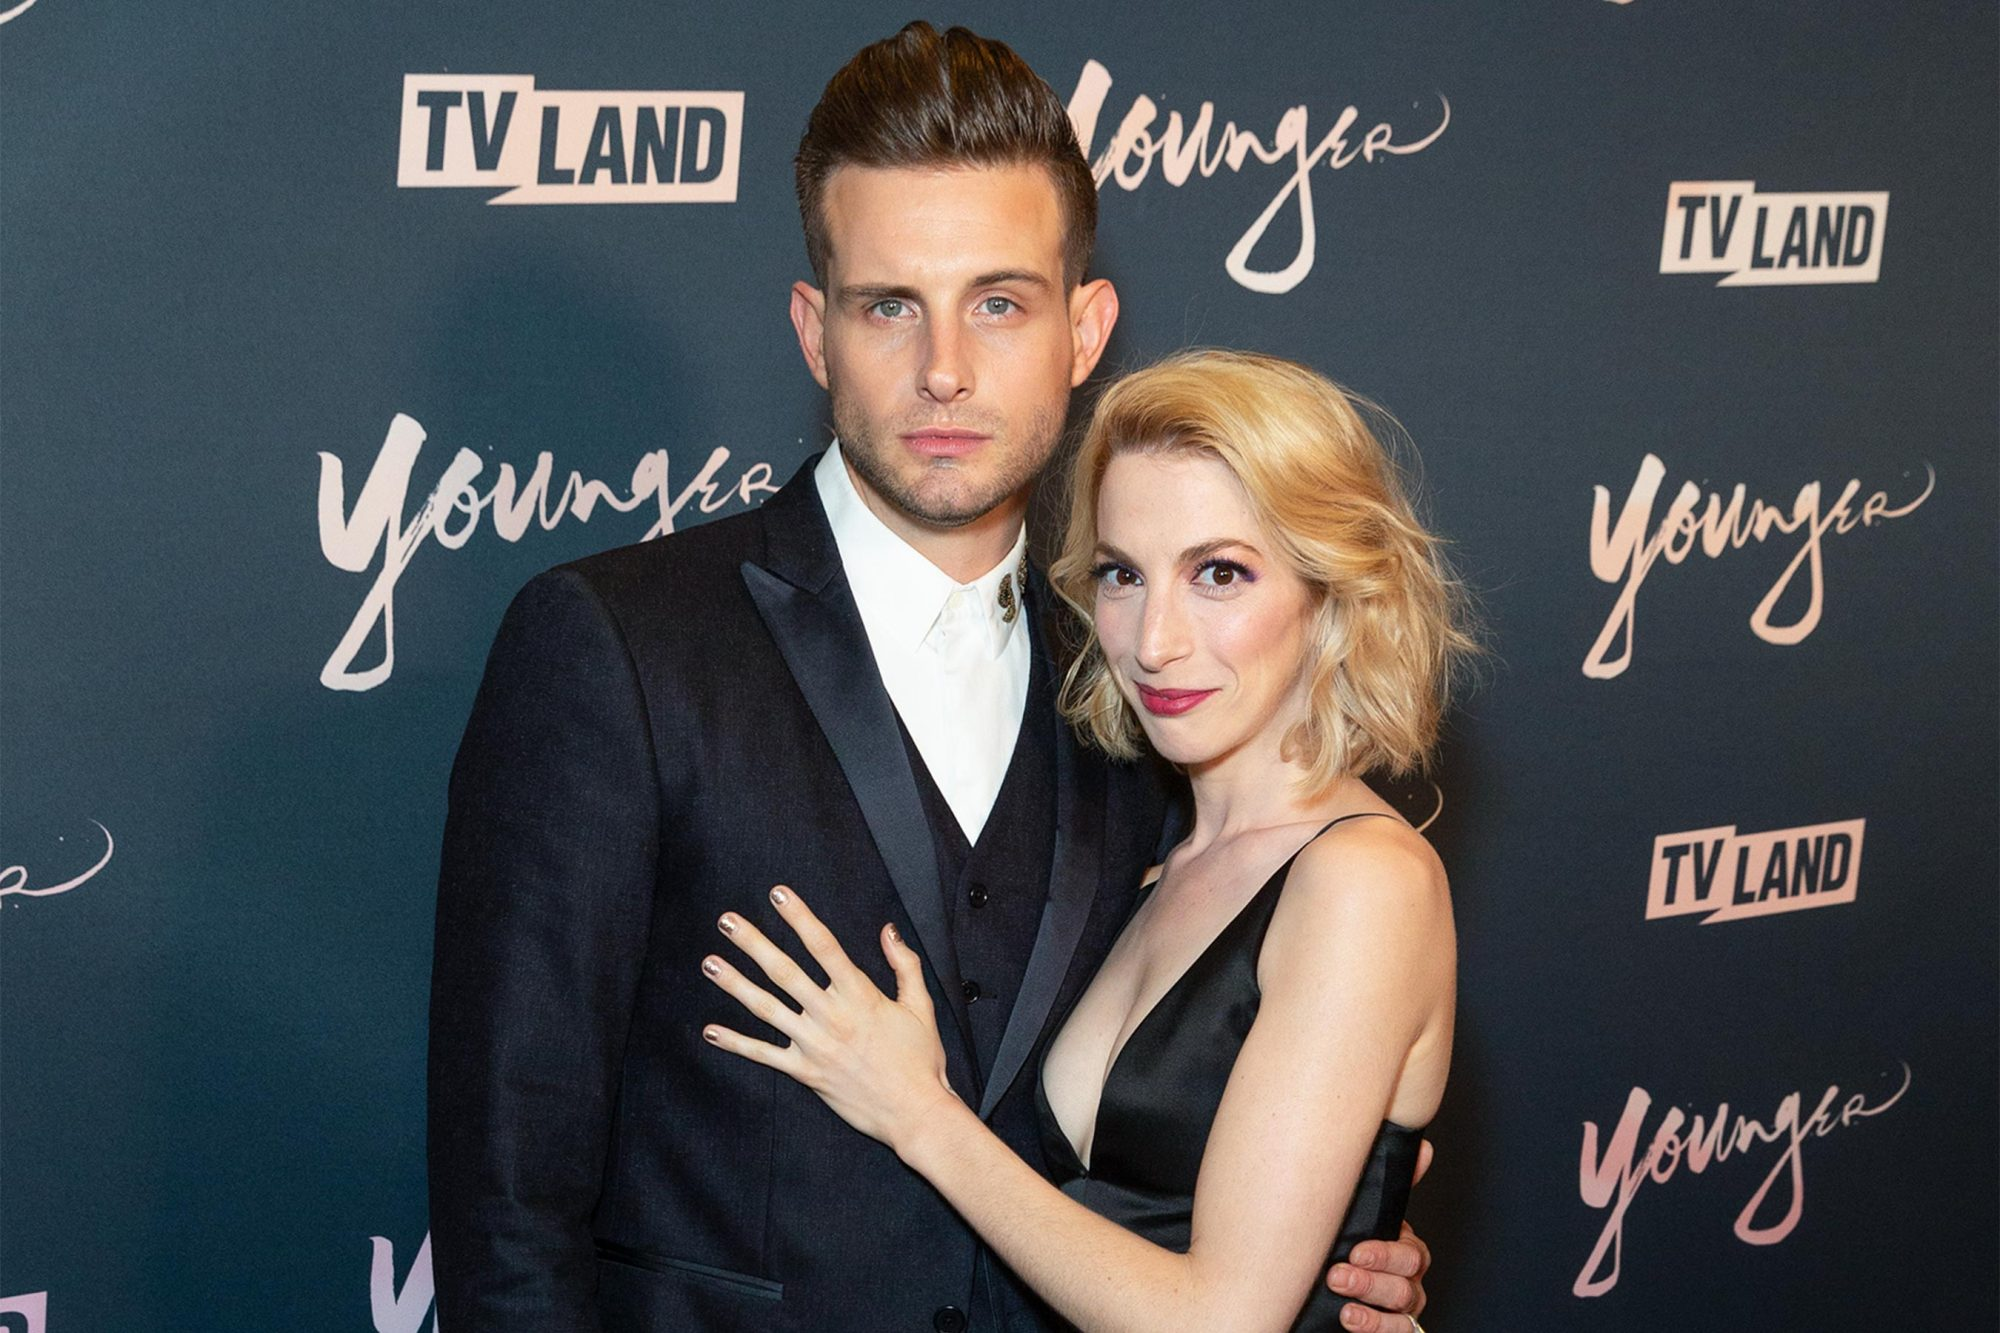 Nico Tortorella and Molly Bernard attend Younger Season 5